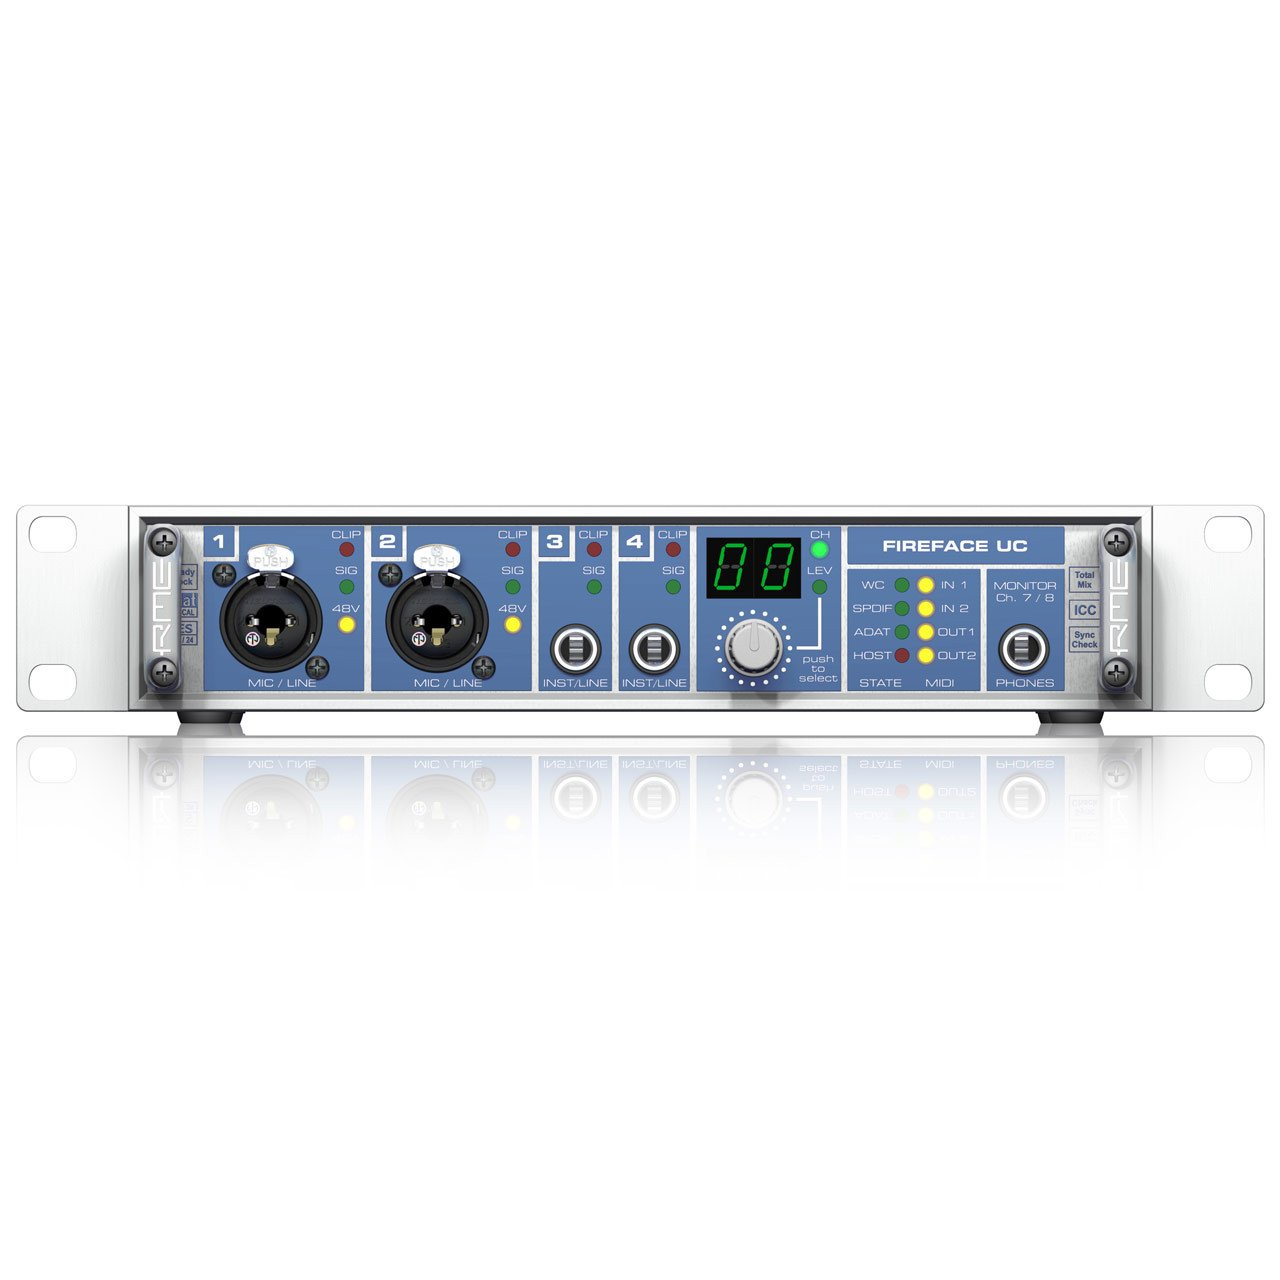 USB Audio Interfaces - RME Fireface UC 36-Channel 24-Bit/192kHz USB High Speed Audio Interface